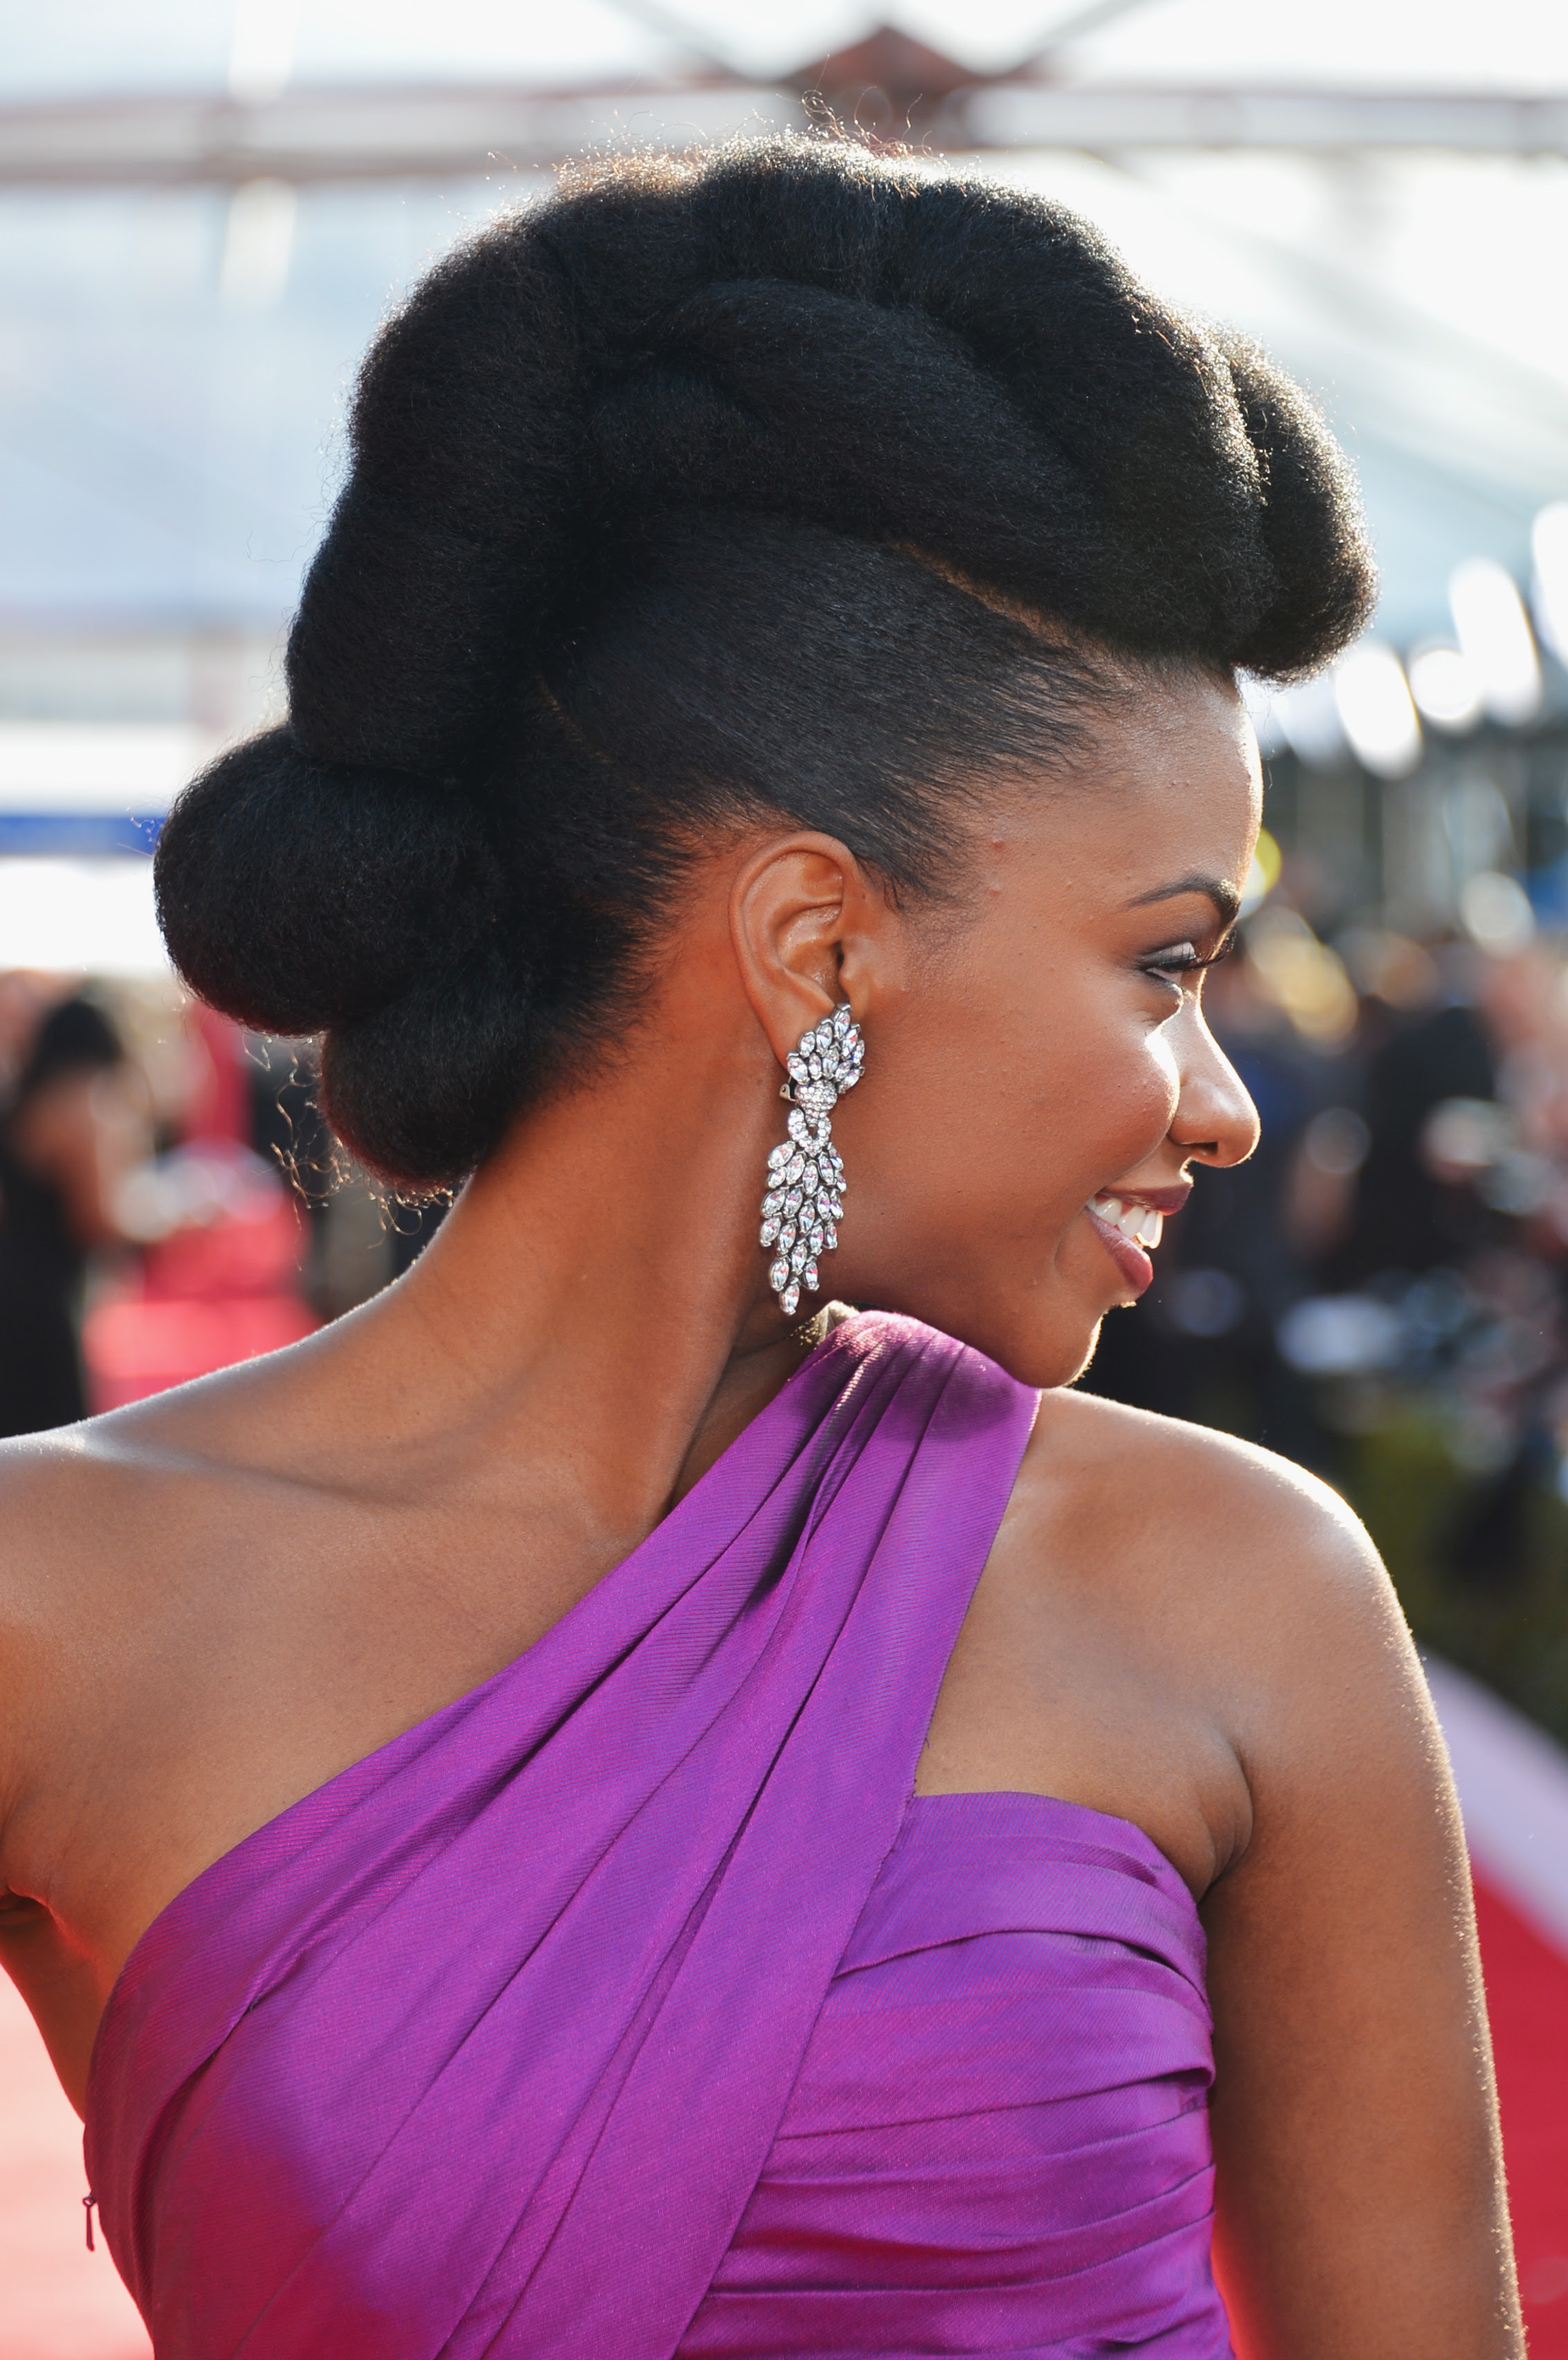 20 Easy Natural Hairstyles For Black Women Ideas For Short pertaining to Natural Hair Styles Pictures Black Hair